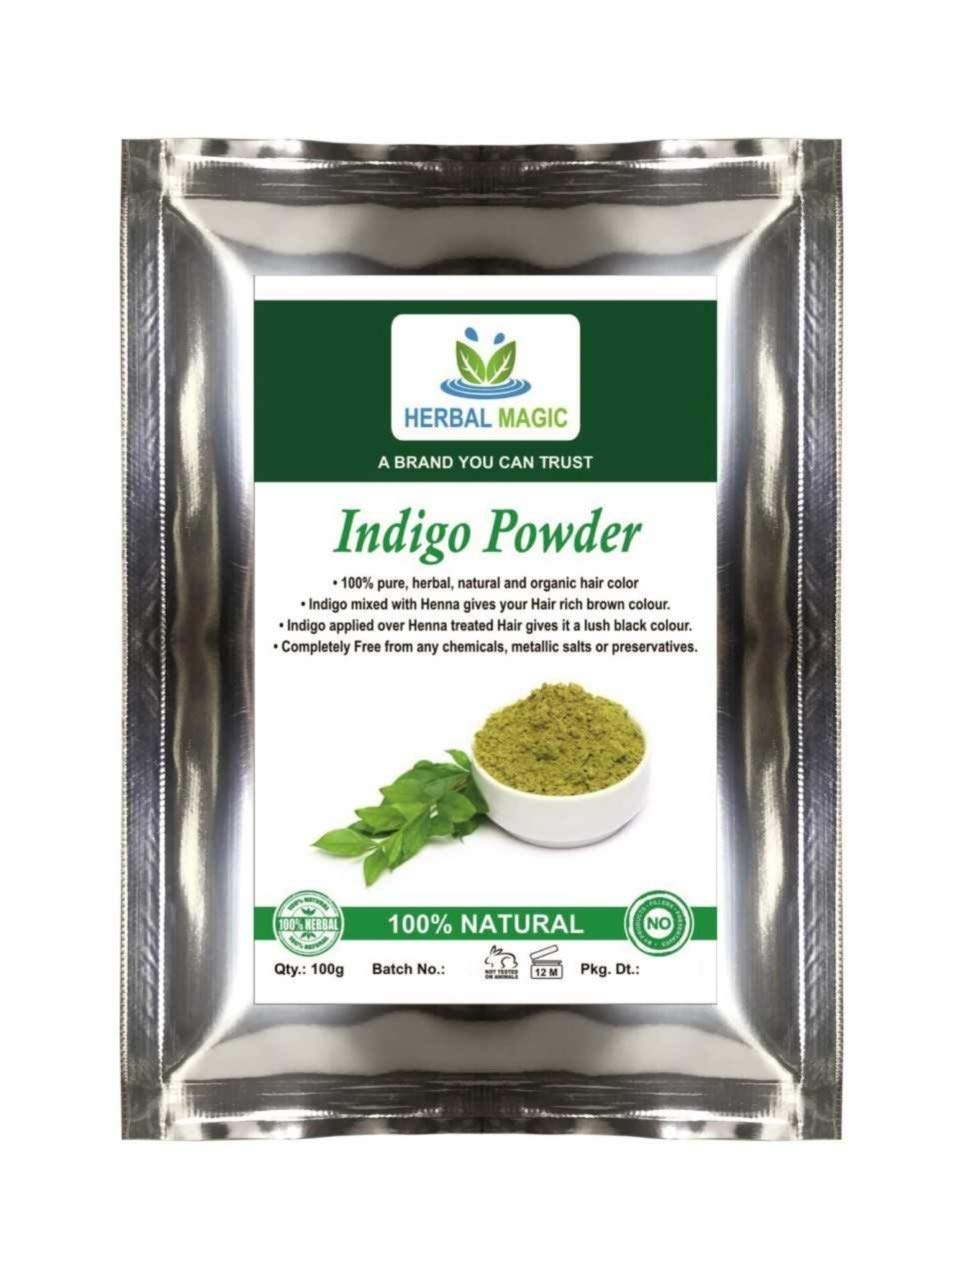 ORGANIC CERTIFIED BY USDA- INDIGO 'BLACK HENNA' POWDER / HERBAL HAIR DYE - GO BLACK/BROWN NATURALLY-ONLY BY HERBAL MAGIC- USDA/GMP/HALAL/ISO CERT (1Kg) NATURAL HAIR DYE GROWTH CONDITIONER ANTI HAIR LOSS DANDRUFF FREE SCALP THICKER FULLER HAIR VIGOUR SHINE